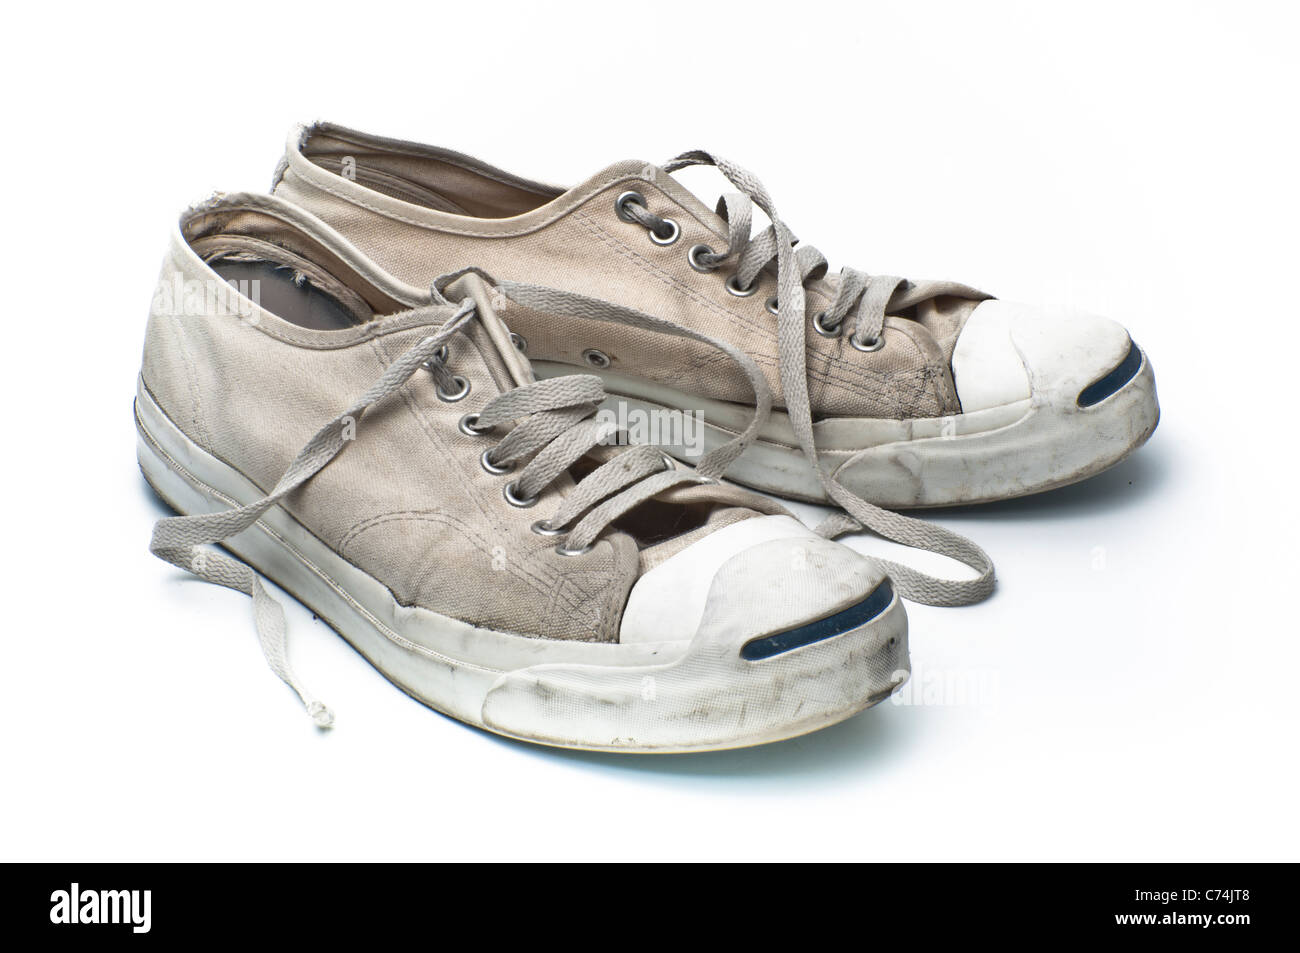 b49a2151a9e9 Converse Jack Purcell tennis shoes on a white background PHILLIP ROBERTS -  Stock Image